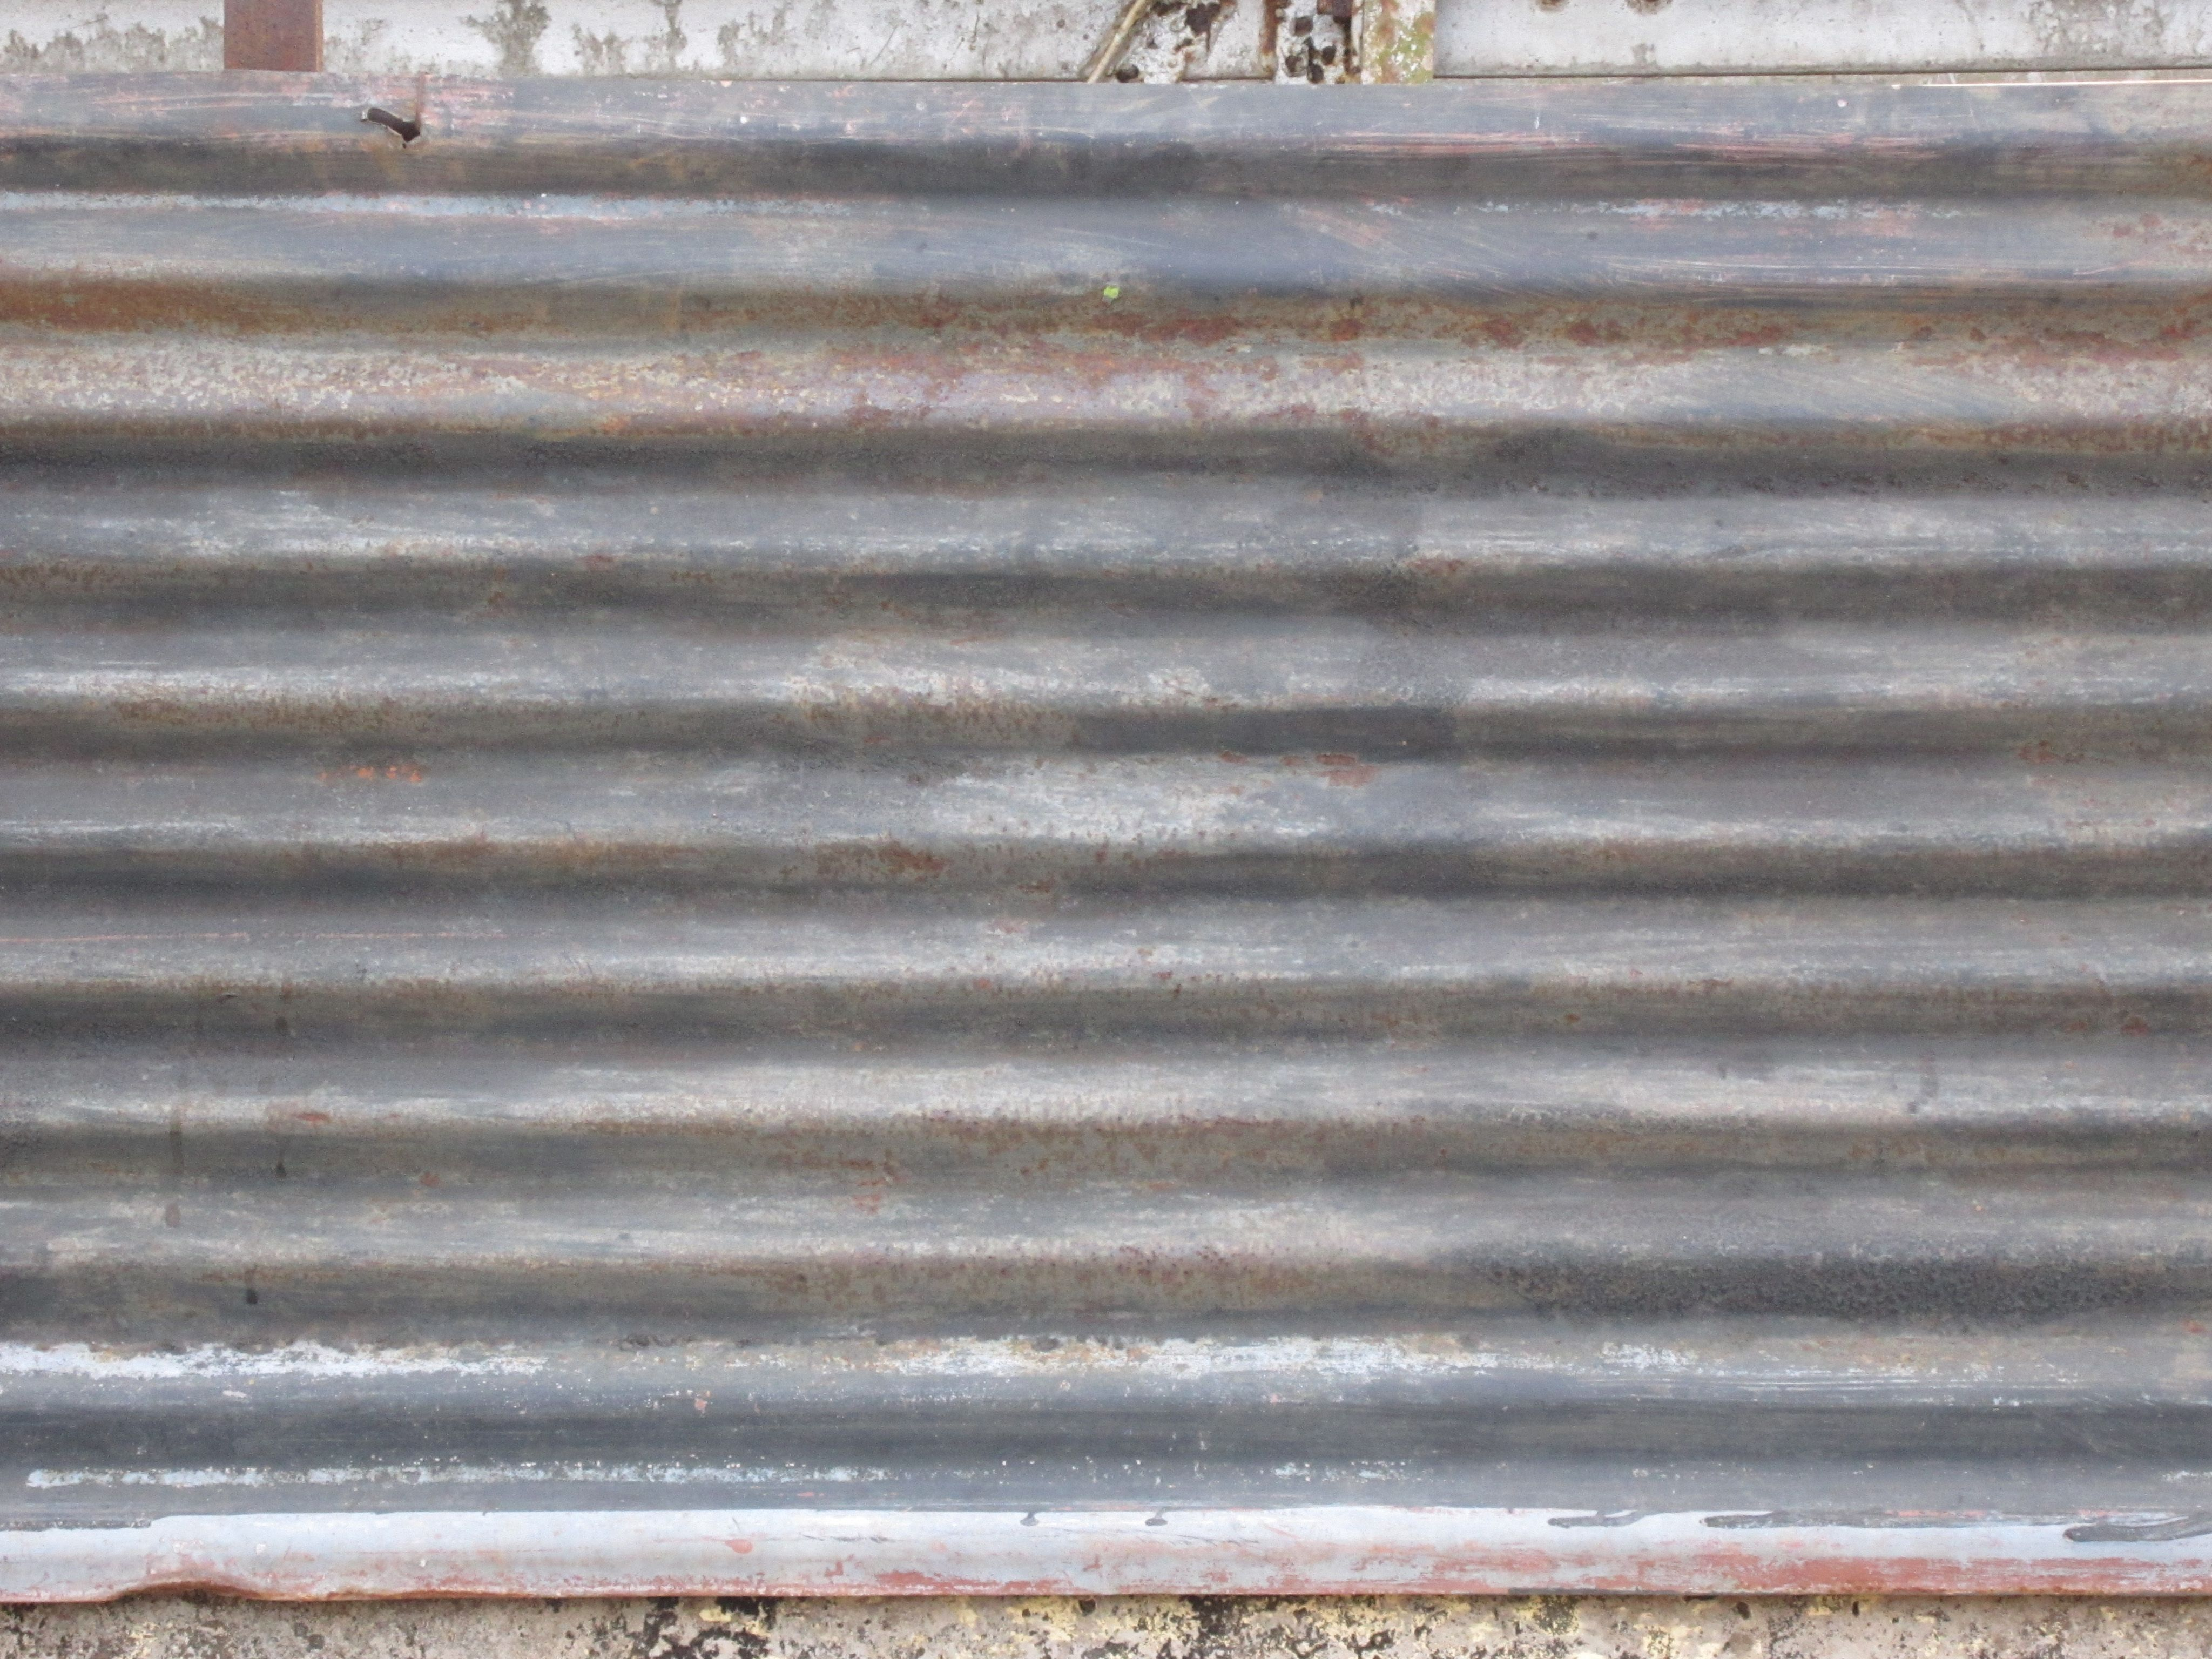 Stainless Steel Corrugated Sheet China Stainless Steel Corrugated Sheet For Sale Stainless Steel Corrugate Metal Facade Stainless Steel Panels Metal Cladding